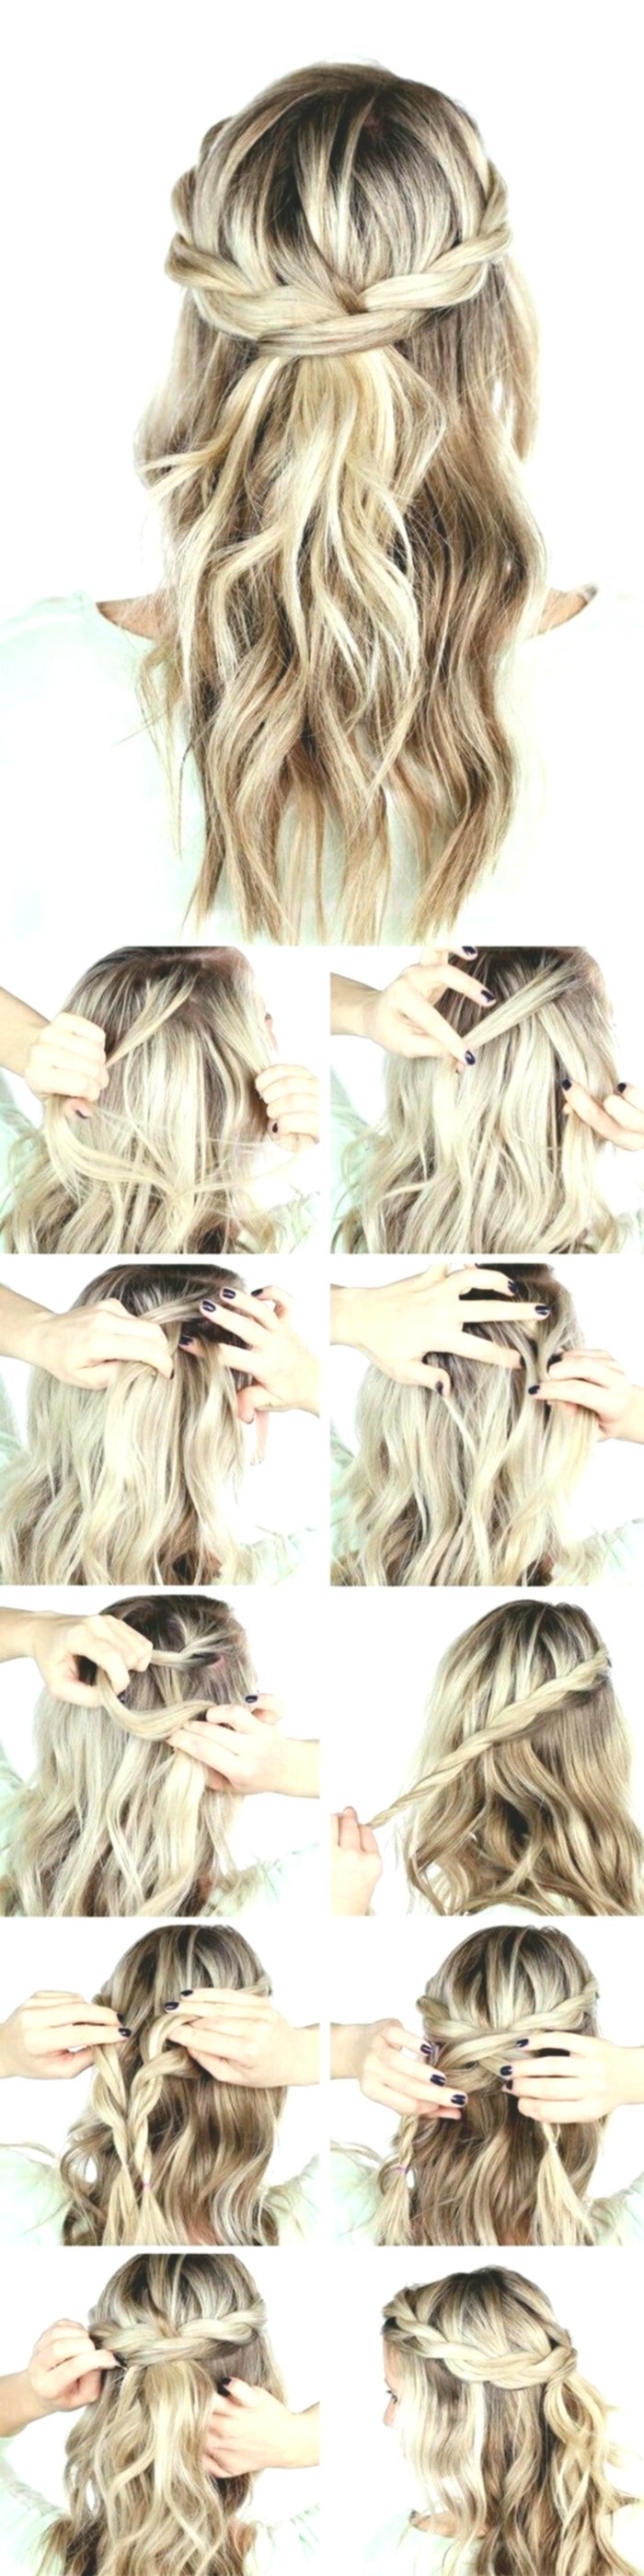 wonderful breath-taking simple hairstyles for daily life photo-top Simple hairstyles for everyday life model